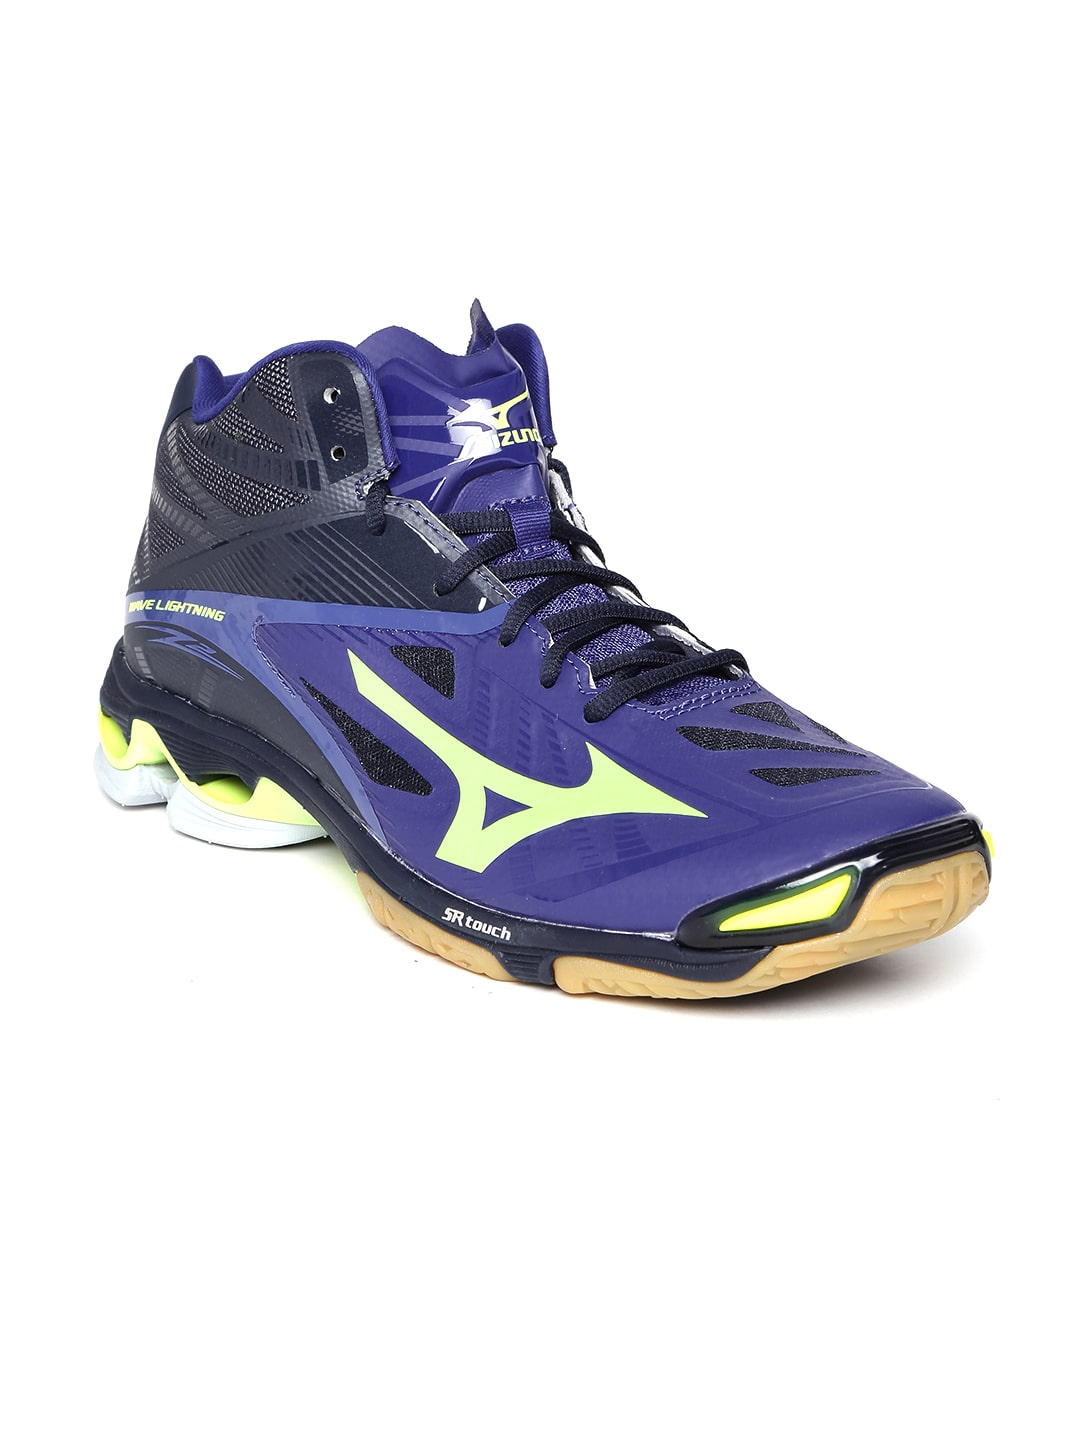 mizuno volleyball shoes online shopping in india official